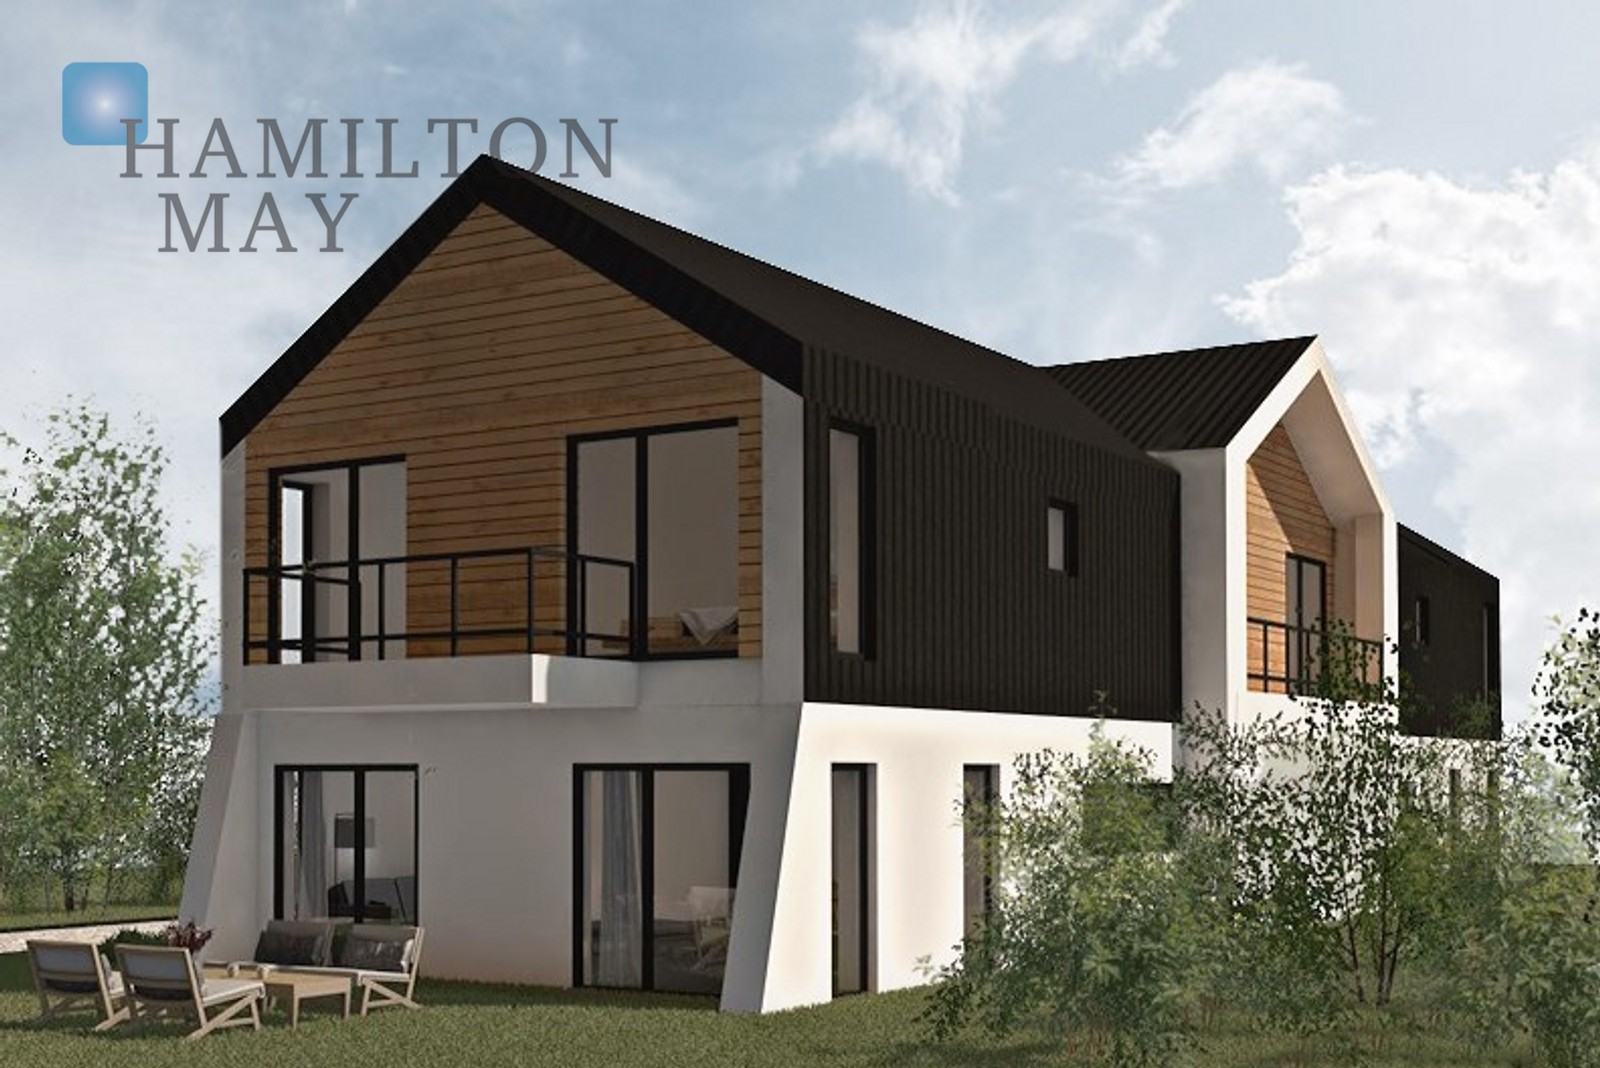 A modular, energy-saving semi-detached house in a great location - Wola Justowska Krakow for sale